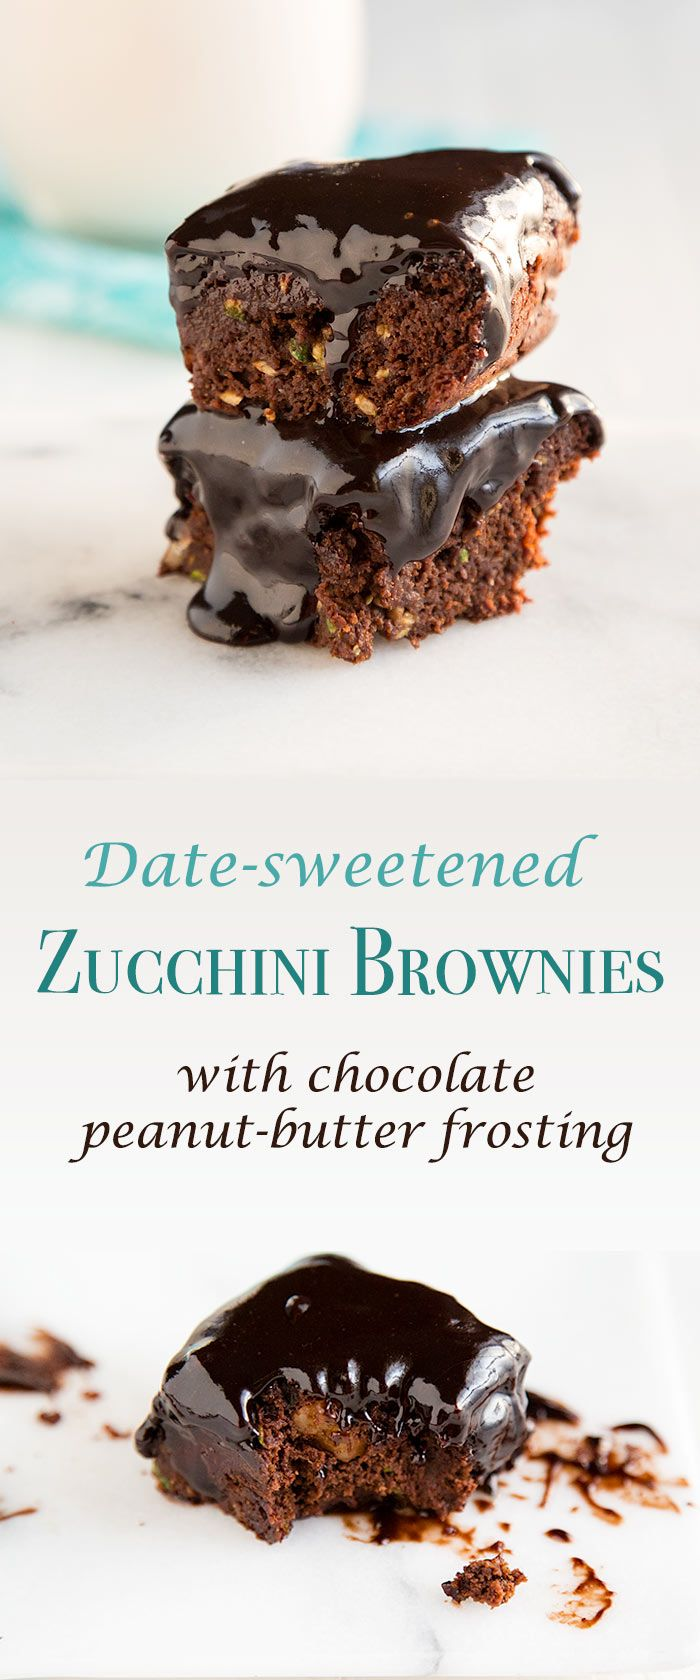 These vegan zucchini brownies are low in sugar and fat, but the decadent chocolate-peanut frosting makes them taste rich and fudgy.